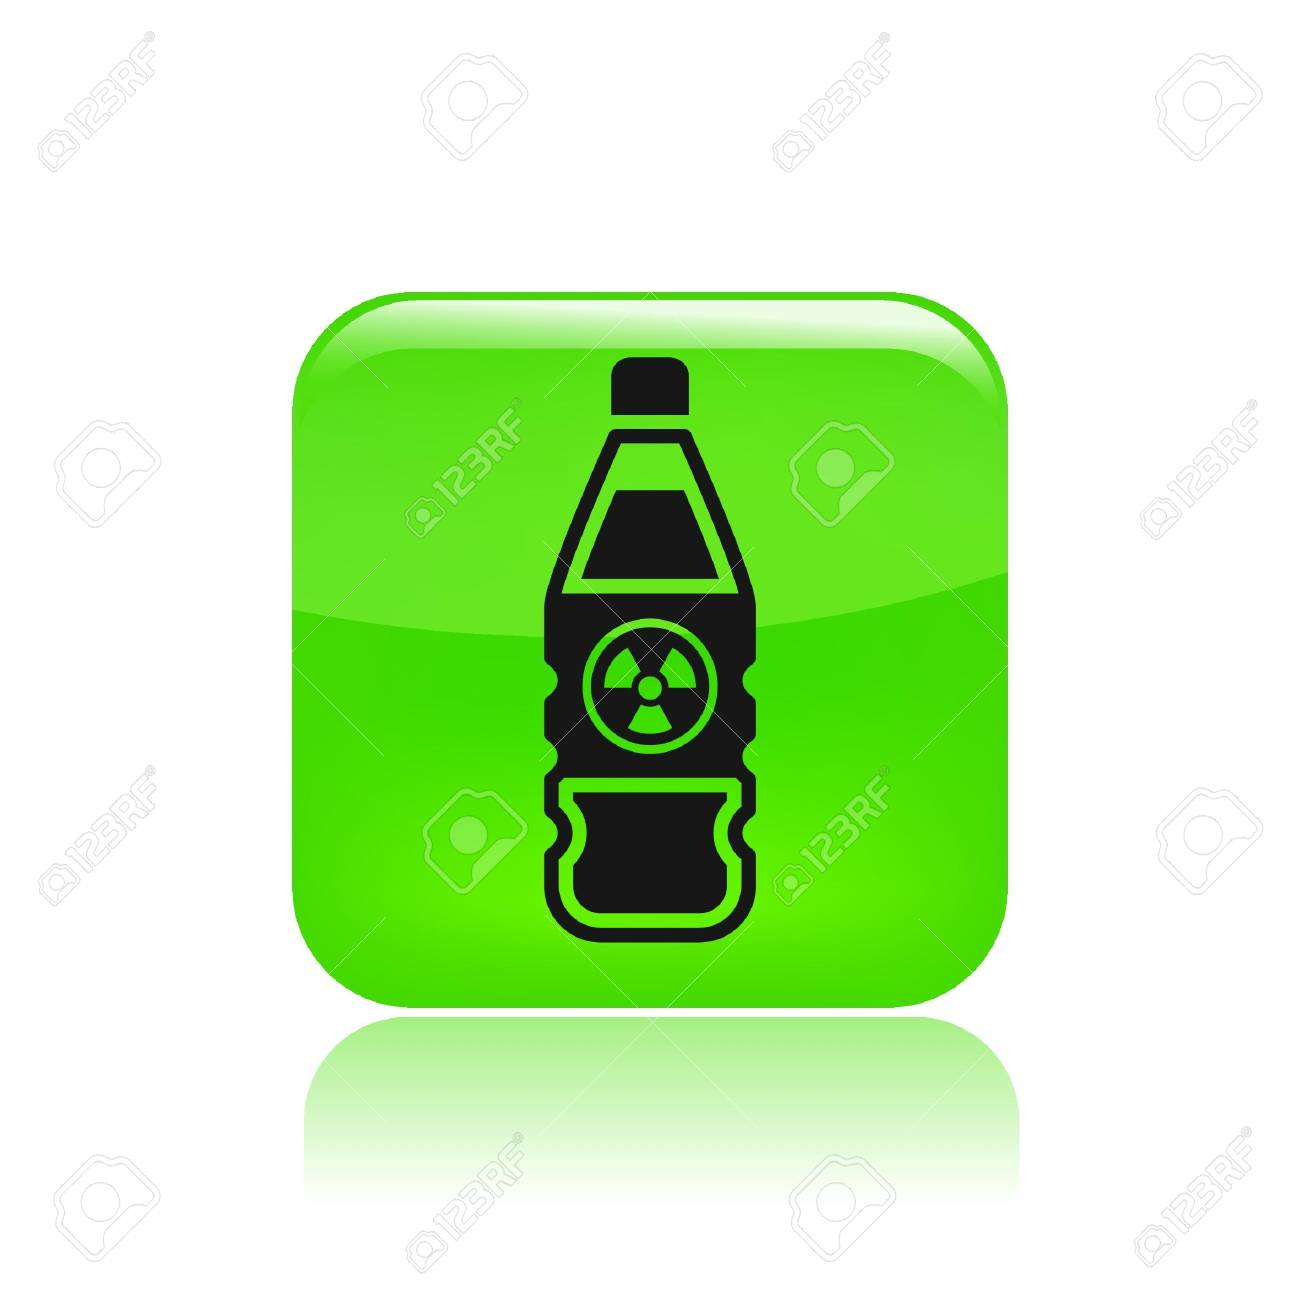 Vector illustration of single isolated bottle icon Stock Vector - 12129414